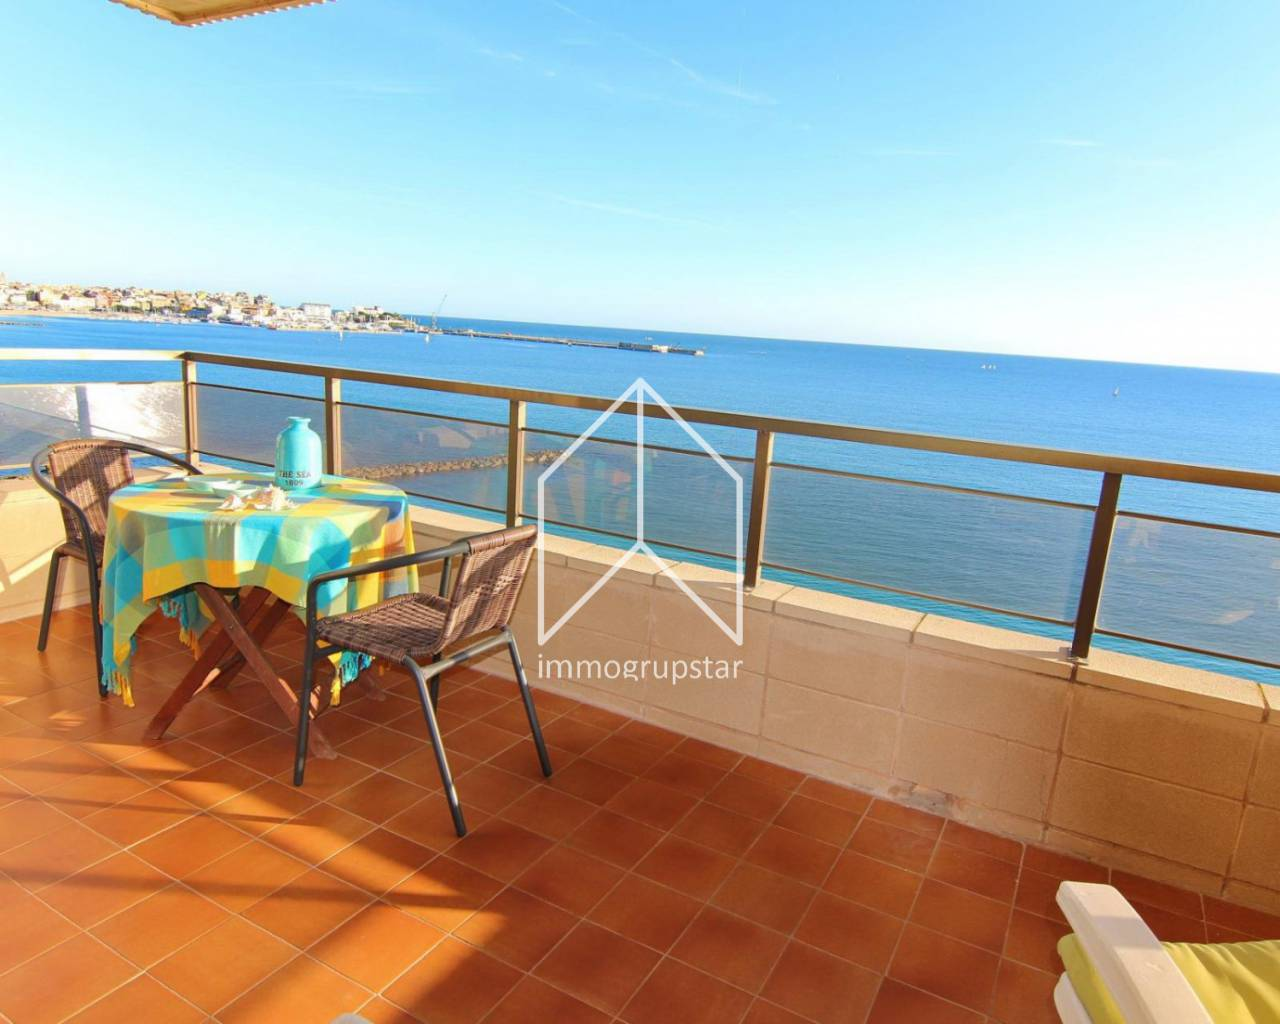 Appartement - Resale - Sant Antoni De Calonge - PRIMERA LINEA DE MAR